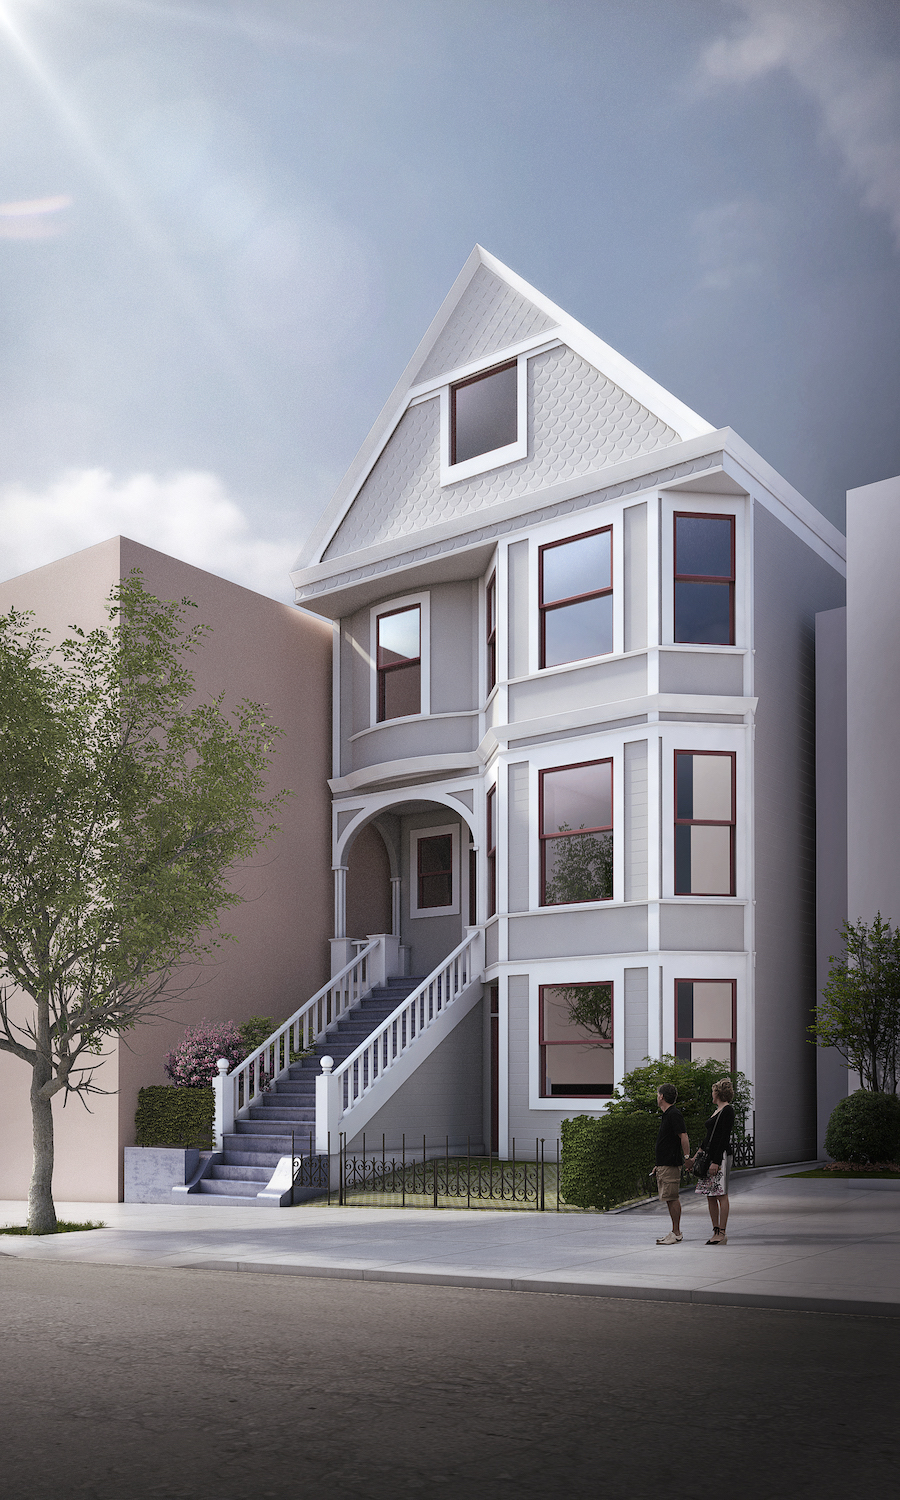 21st street secret garage door entire facade rendering san francisco.jpg